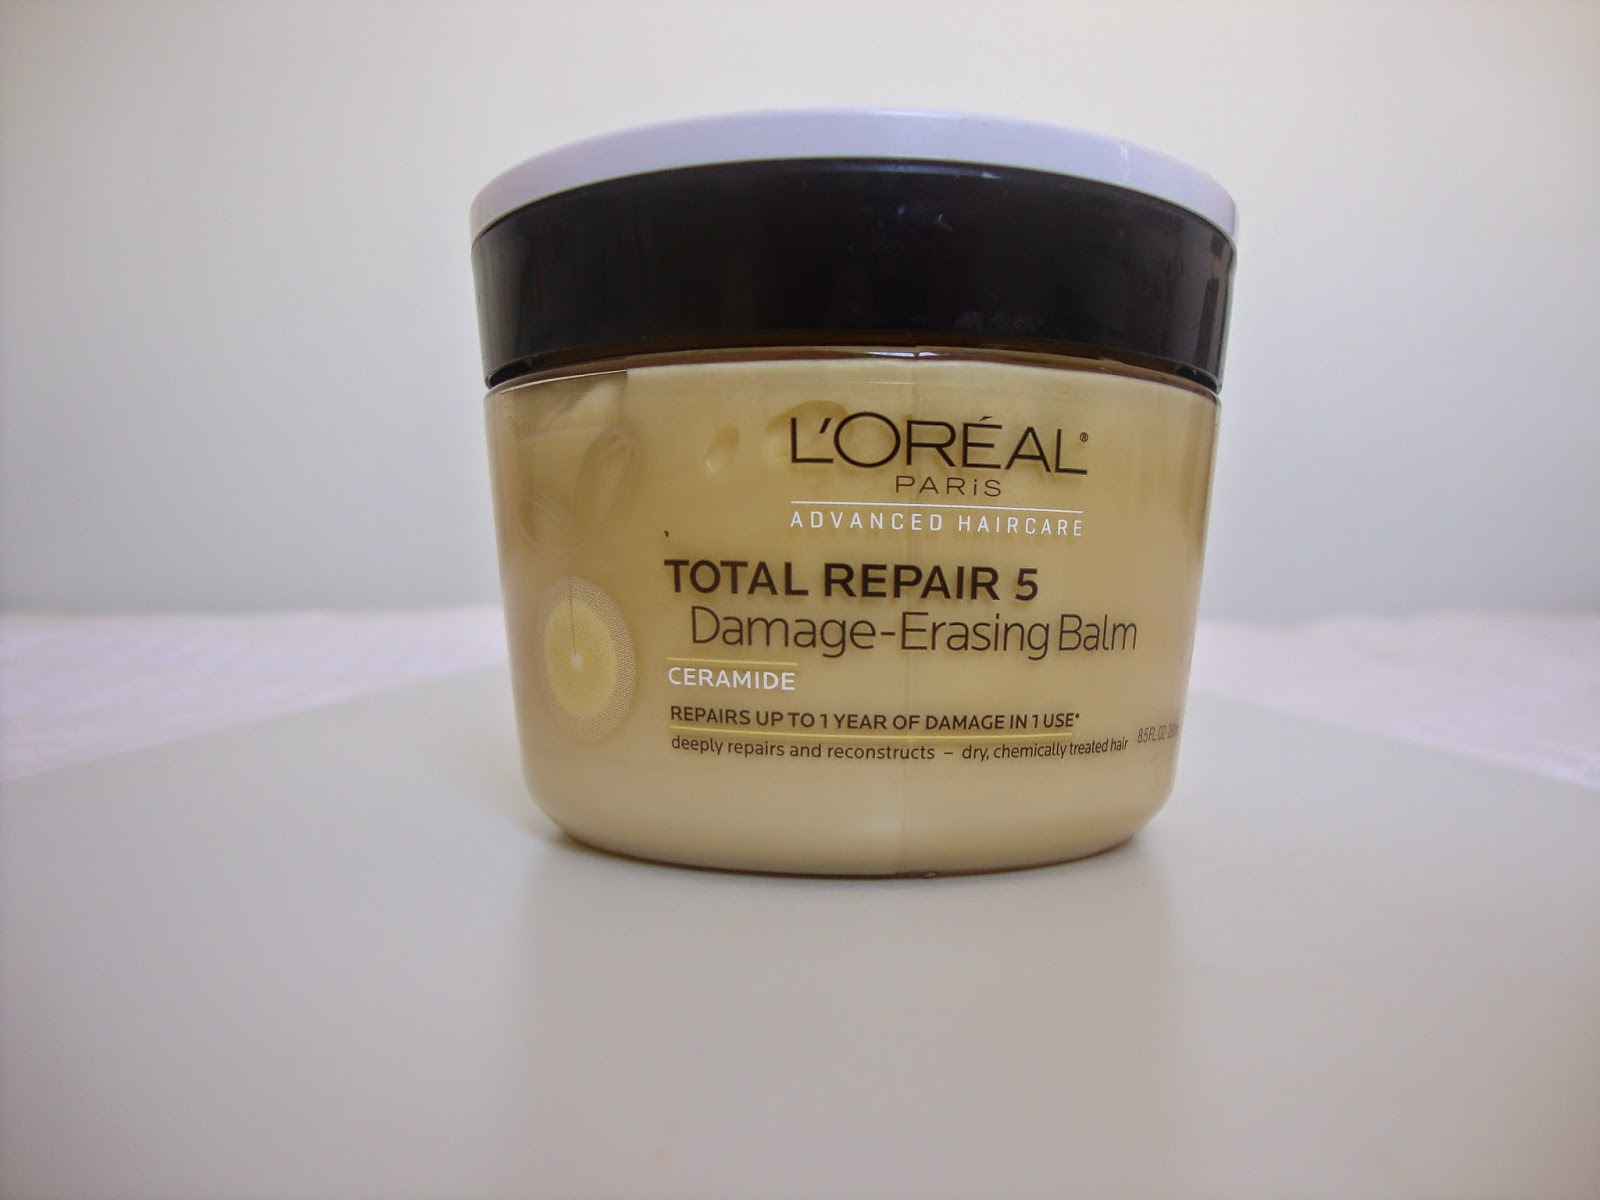 L'oreal Advanced Haircare Total Repair 5 Damage Erasing Balm